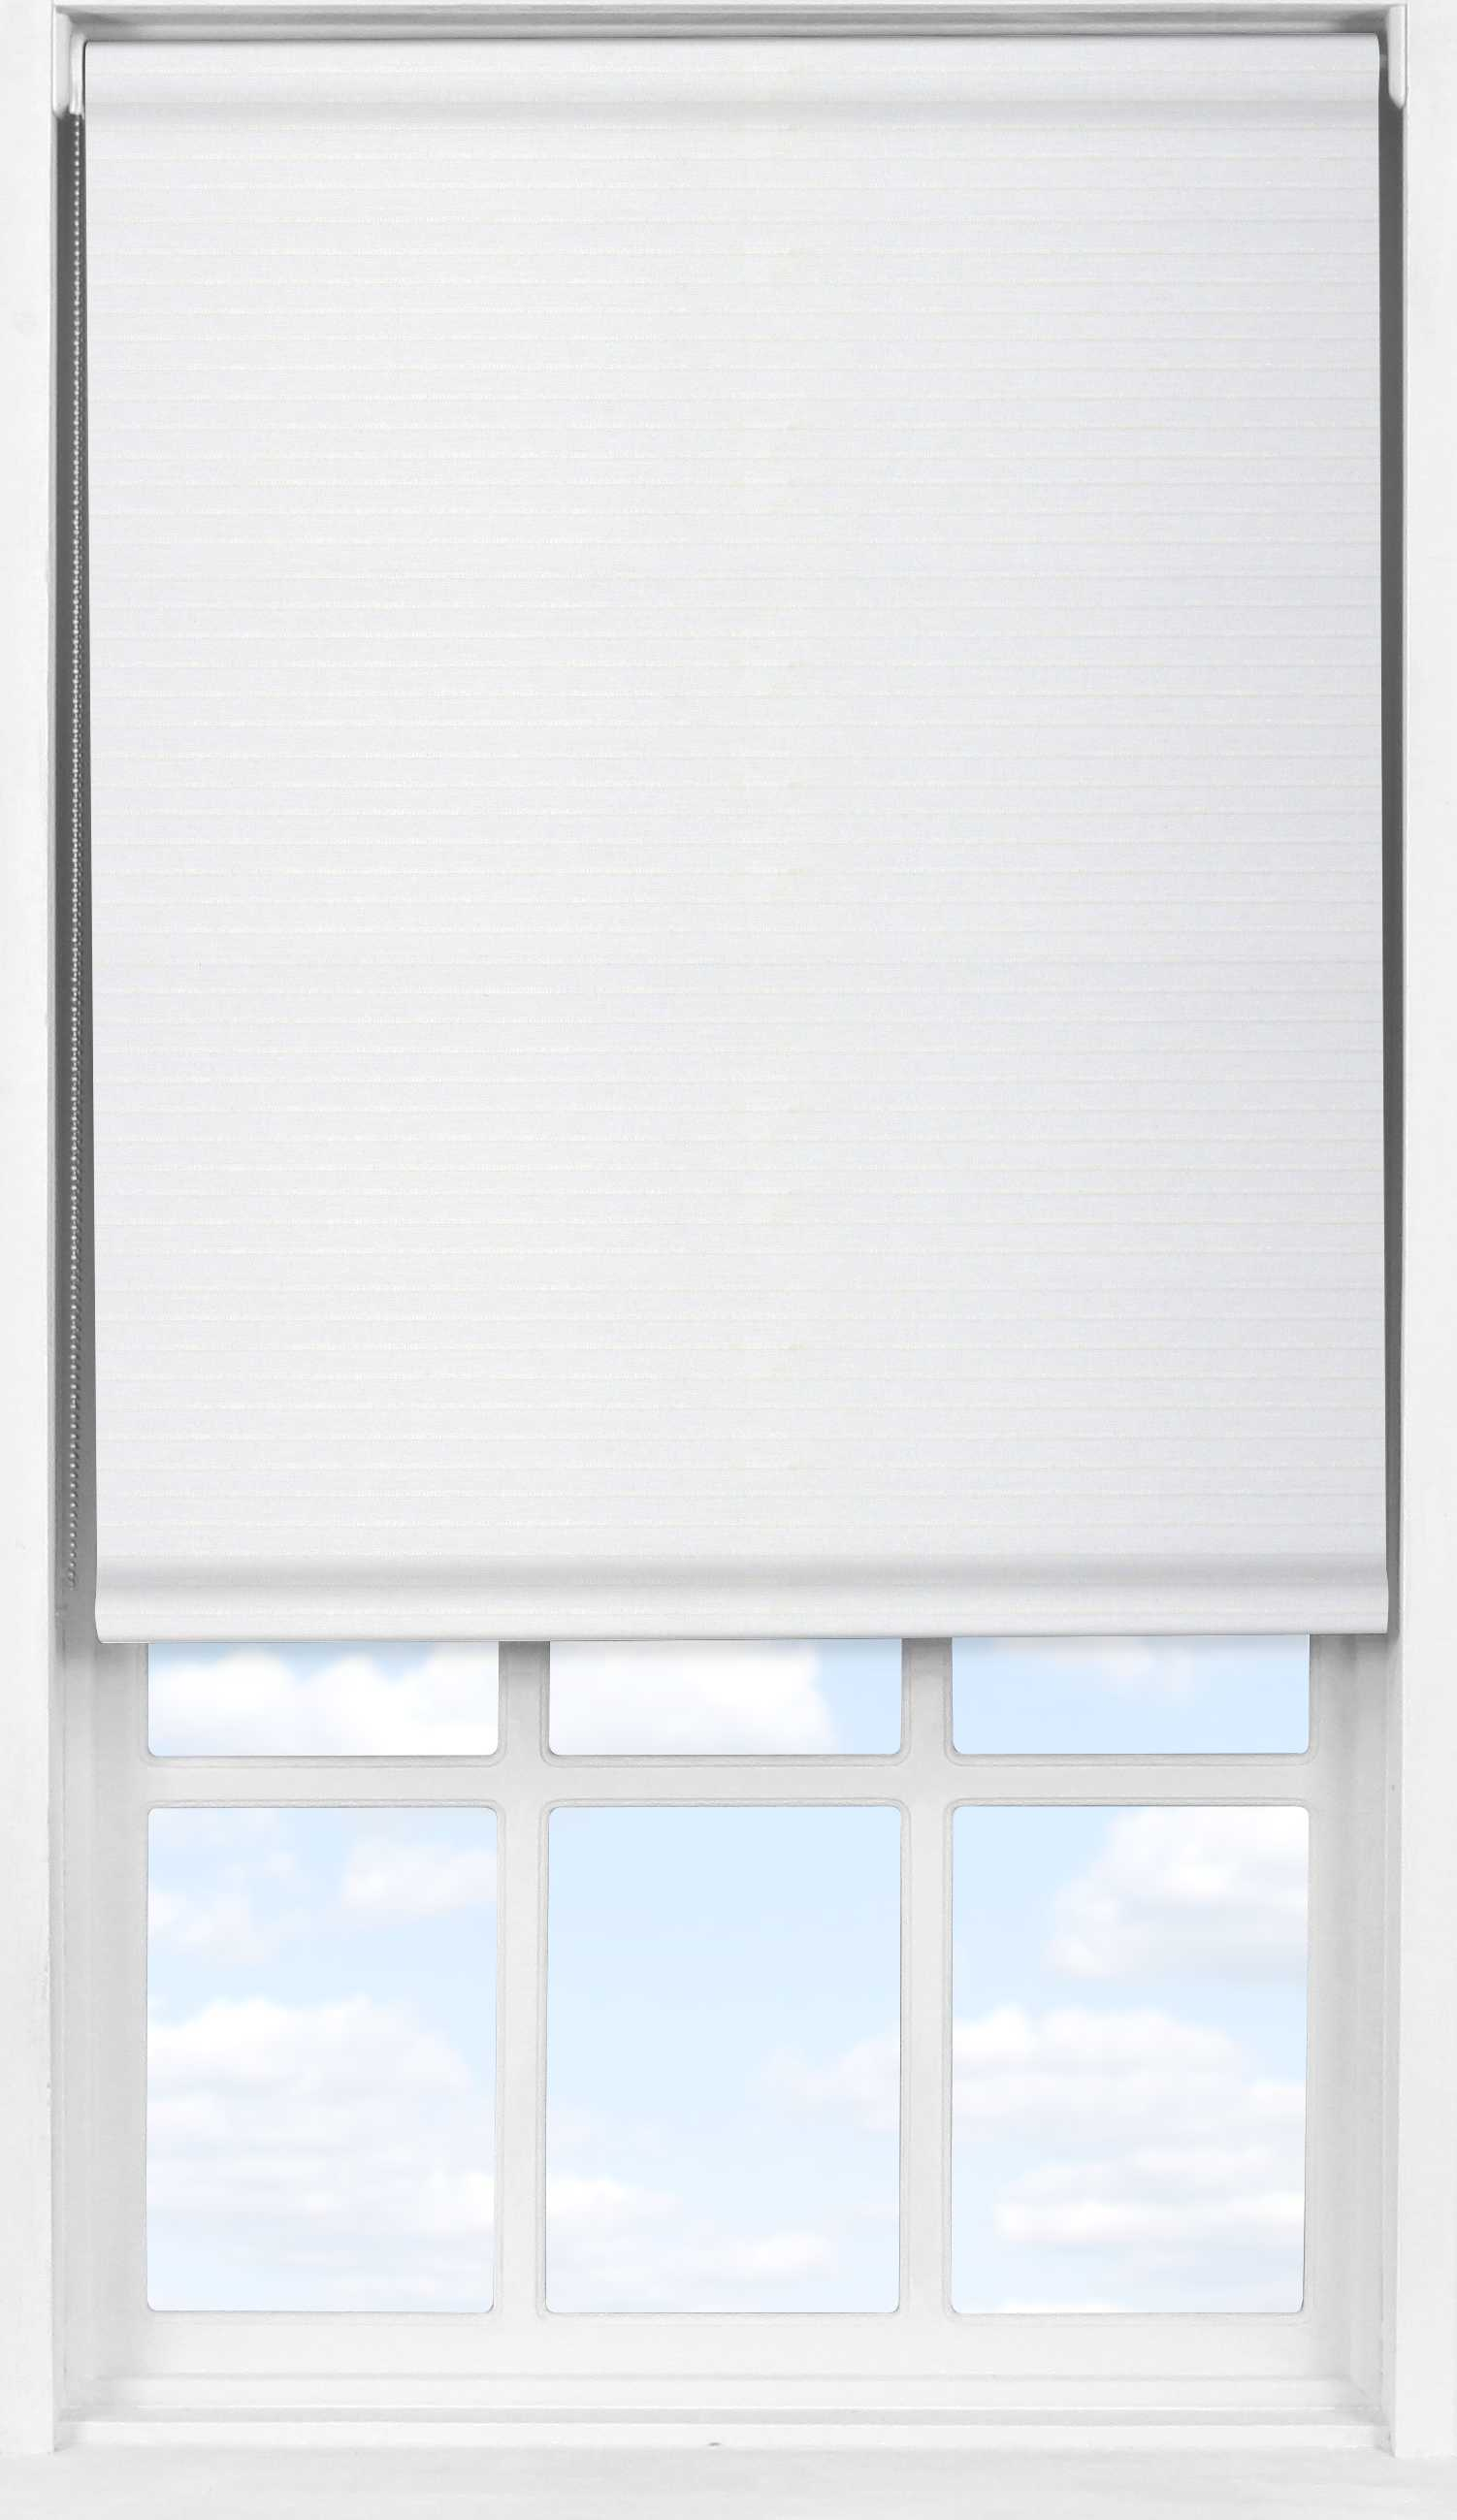 Easifit Roller Blind in Seafoam White Translucent and Transparent Mix